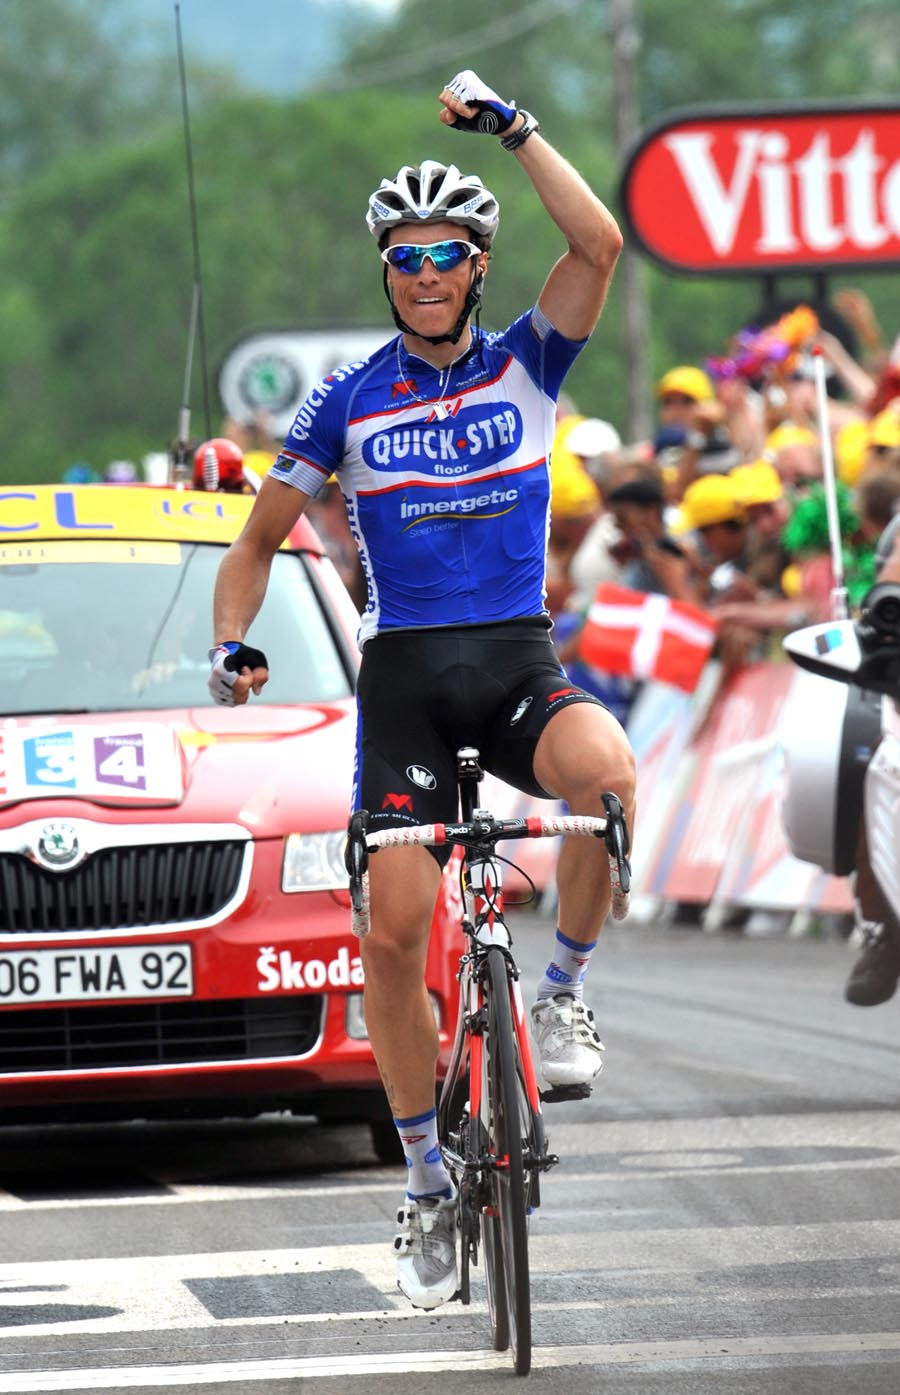 Sylvain Chavanel wins, Tour de France 2010, stage 7